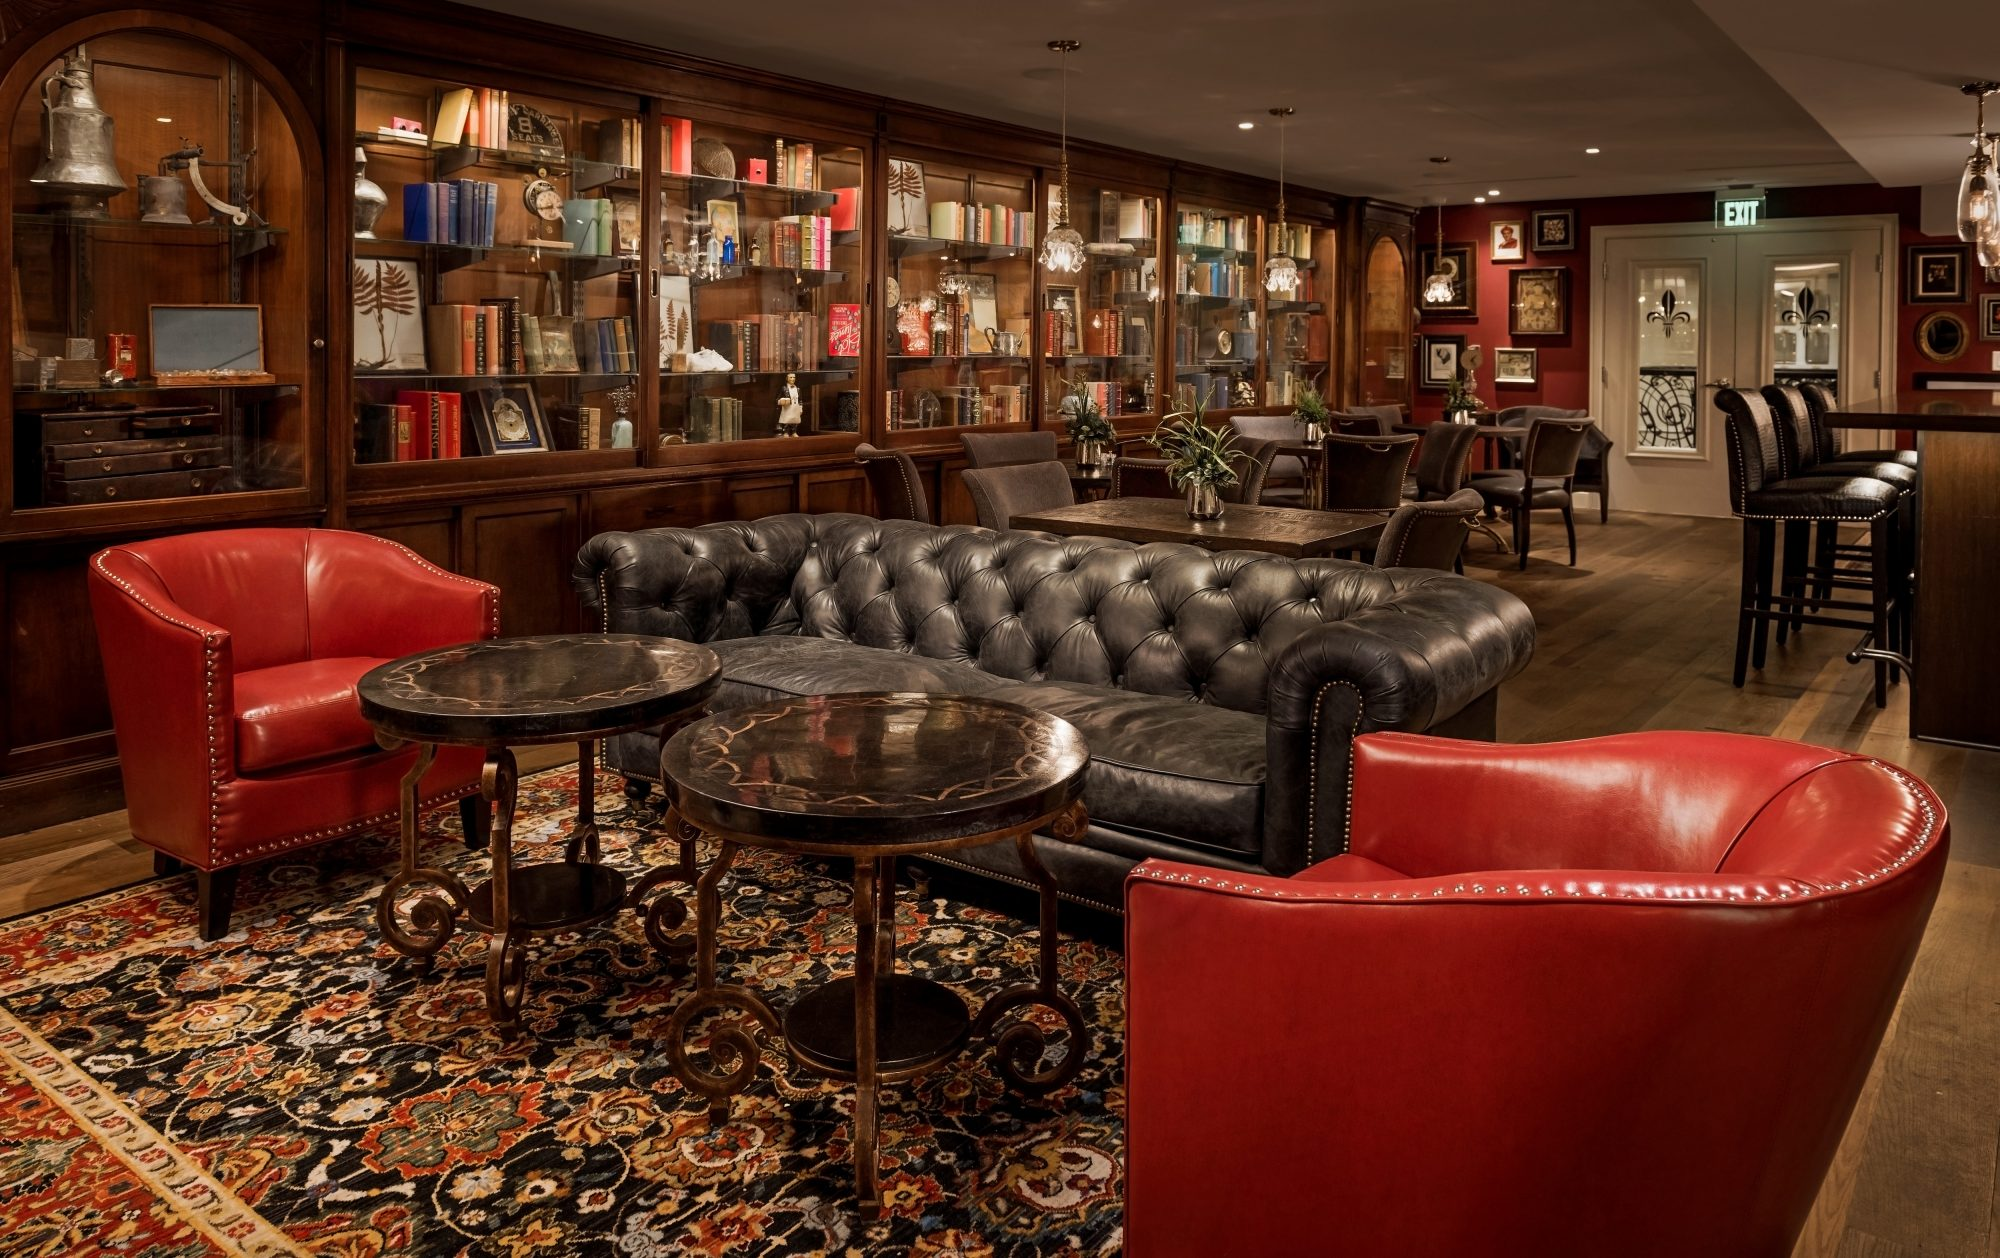 The Ivey's Hotel Library Lounge